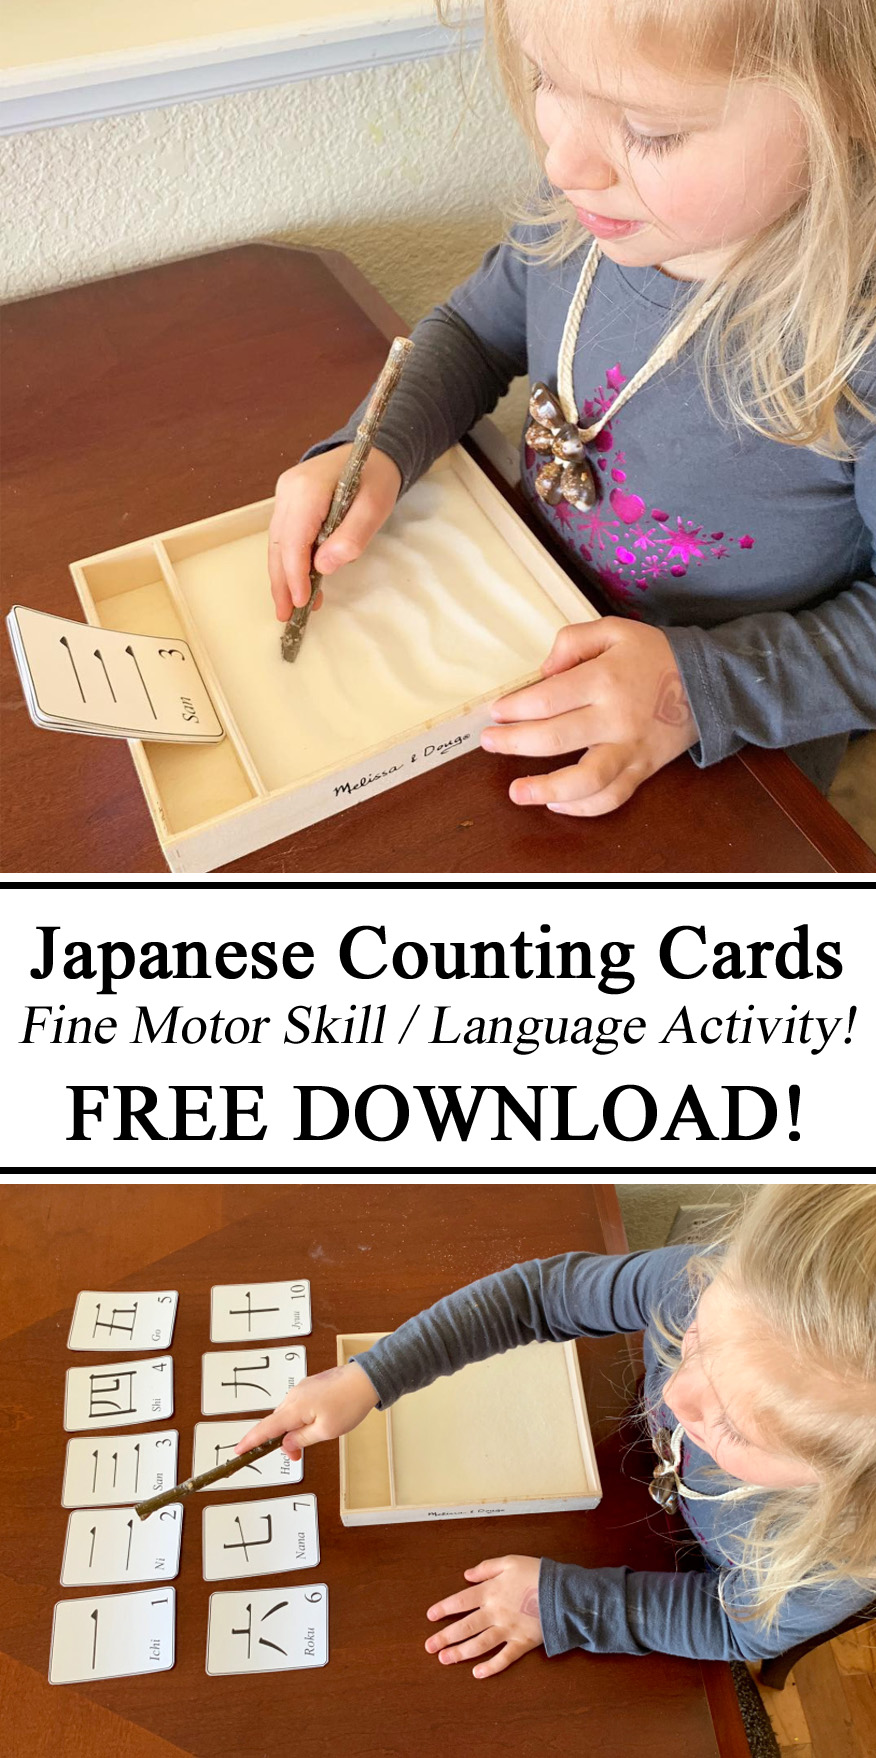 Learn Japanese, Japan Unit, Fine Motor Skills, Language, Early Childhood Education, Free Printable Download, Resources, Inspiration, Sand Tracing, Salt Tracing, Hands on Learning, Educational, Learn, Learning to, How to, DIY, Homeschool, Preschool, Kindergarten, Little Passports,